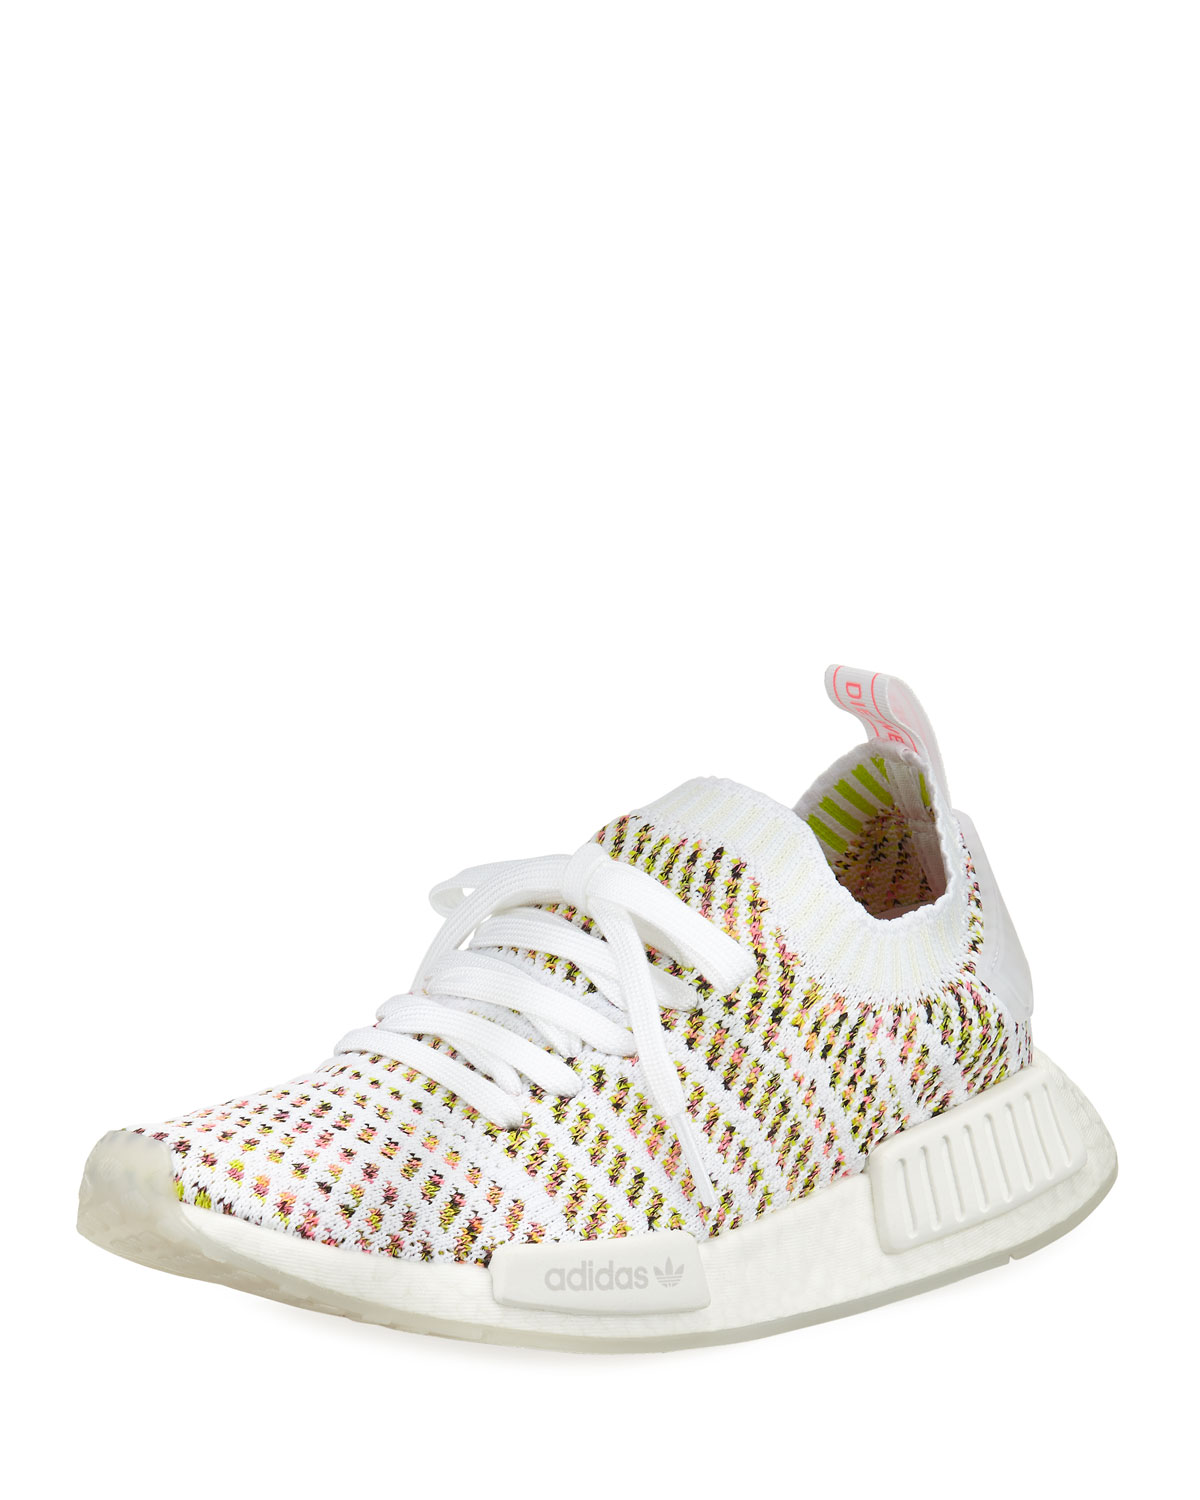 competitive price e0b5e d61ac NMD R1 Primeknit Sneakers, WhiteYellowPink